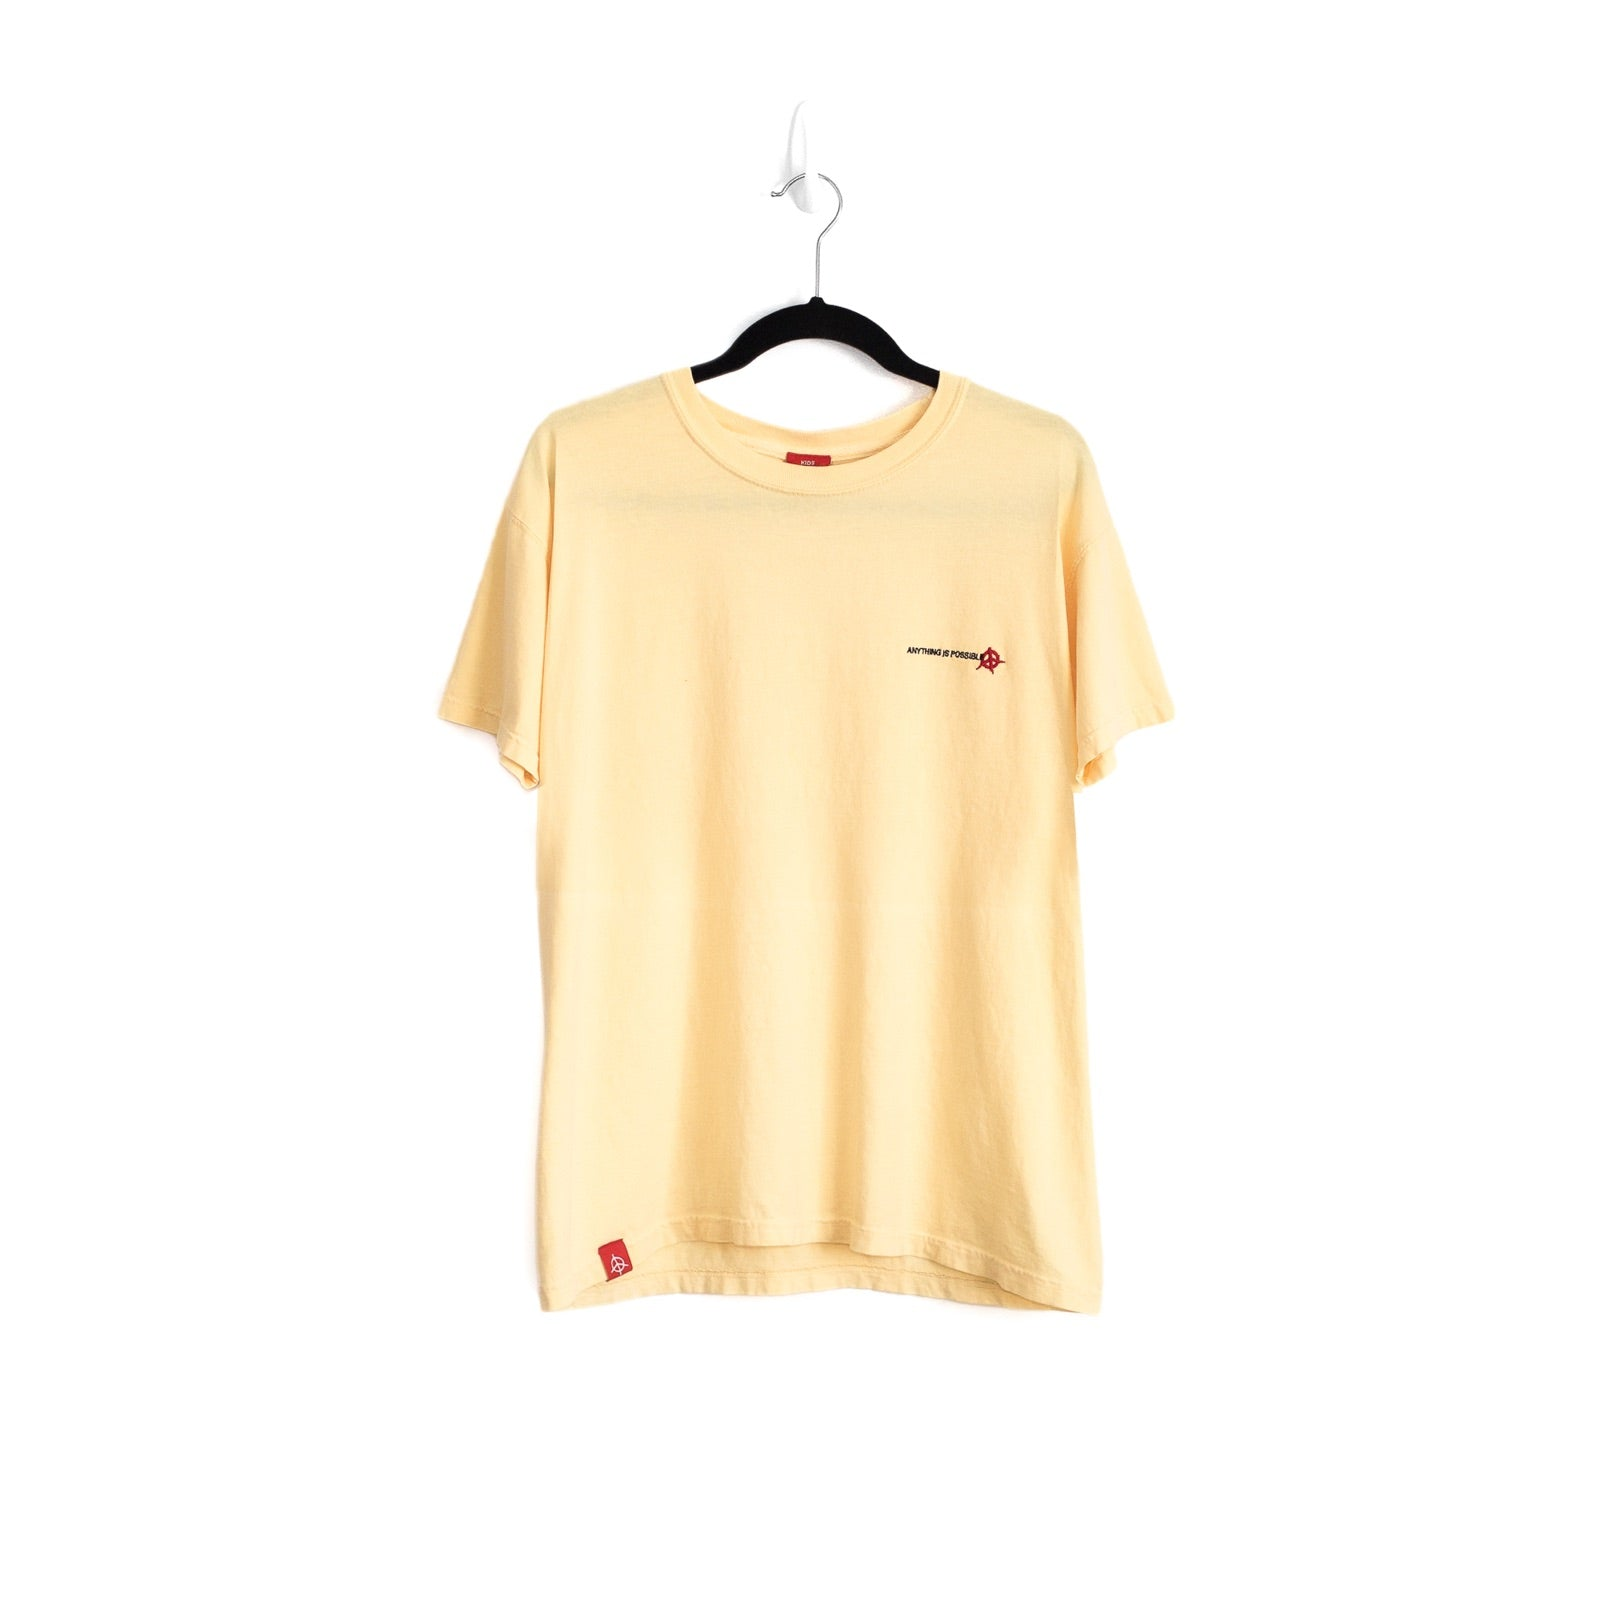 ANYTHING IS POSSIBLE ESSENTIAL T-SHIRT - SUMMER YELLOW